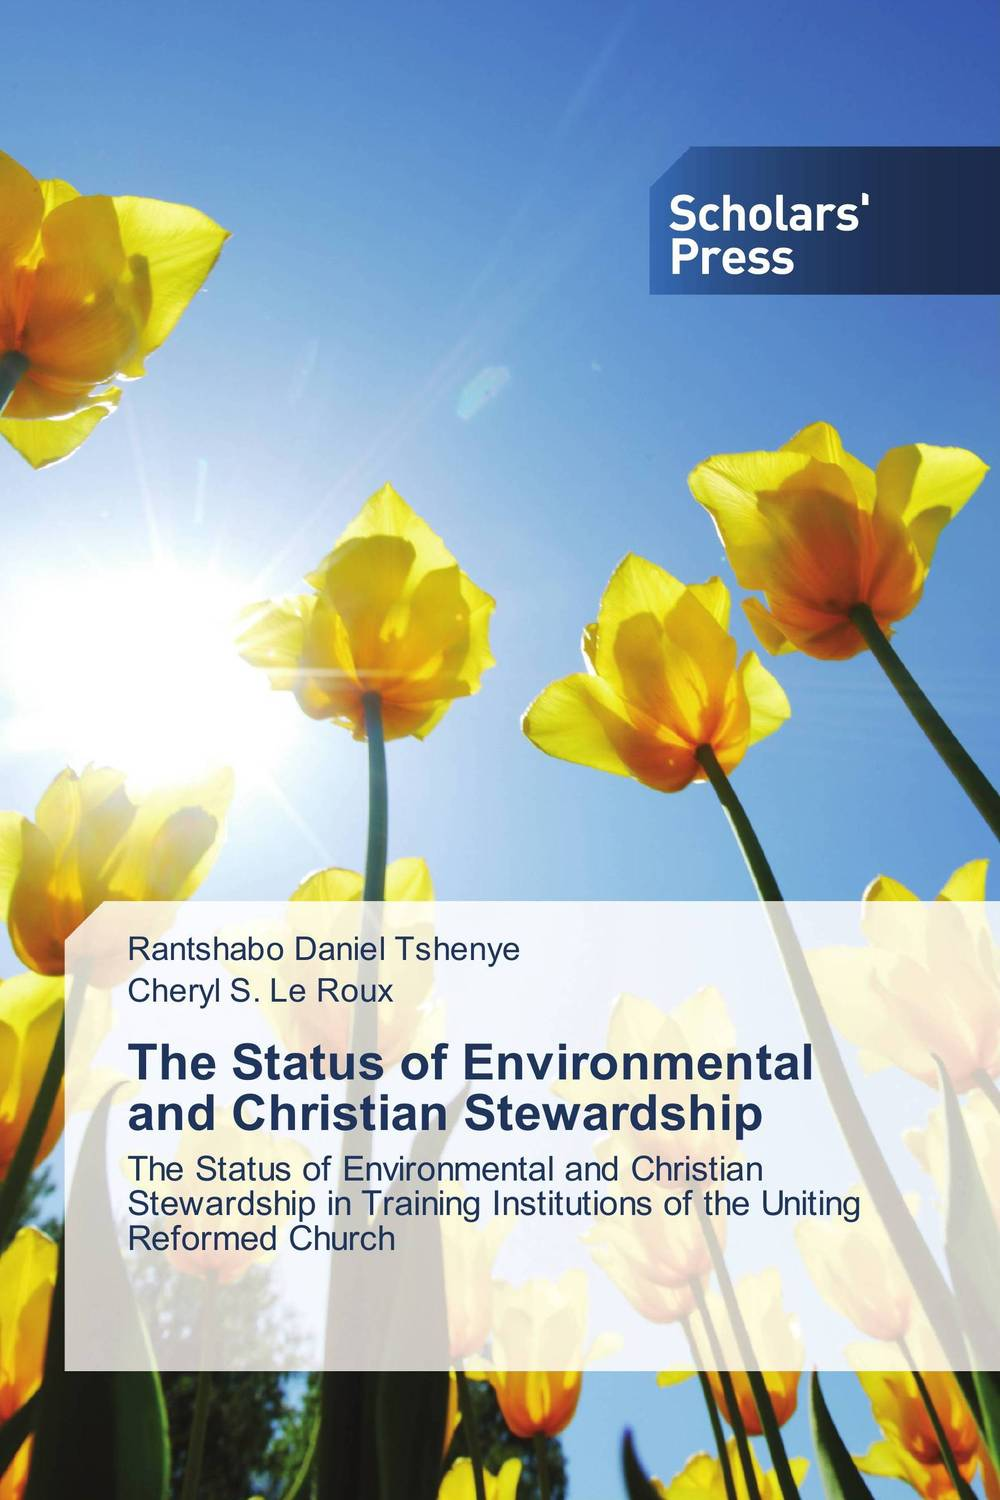 The Status of Environmental and Christian Stewardship